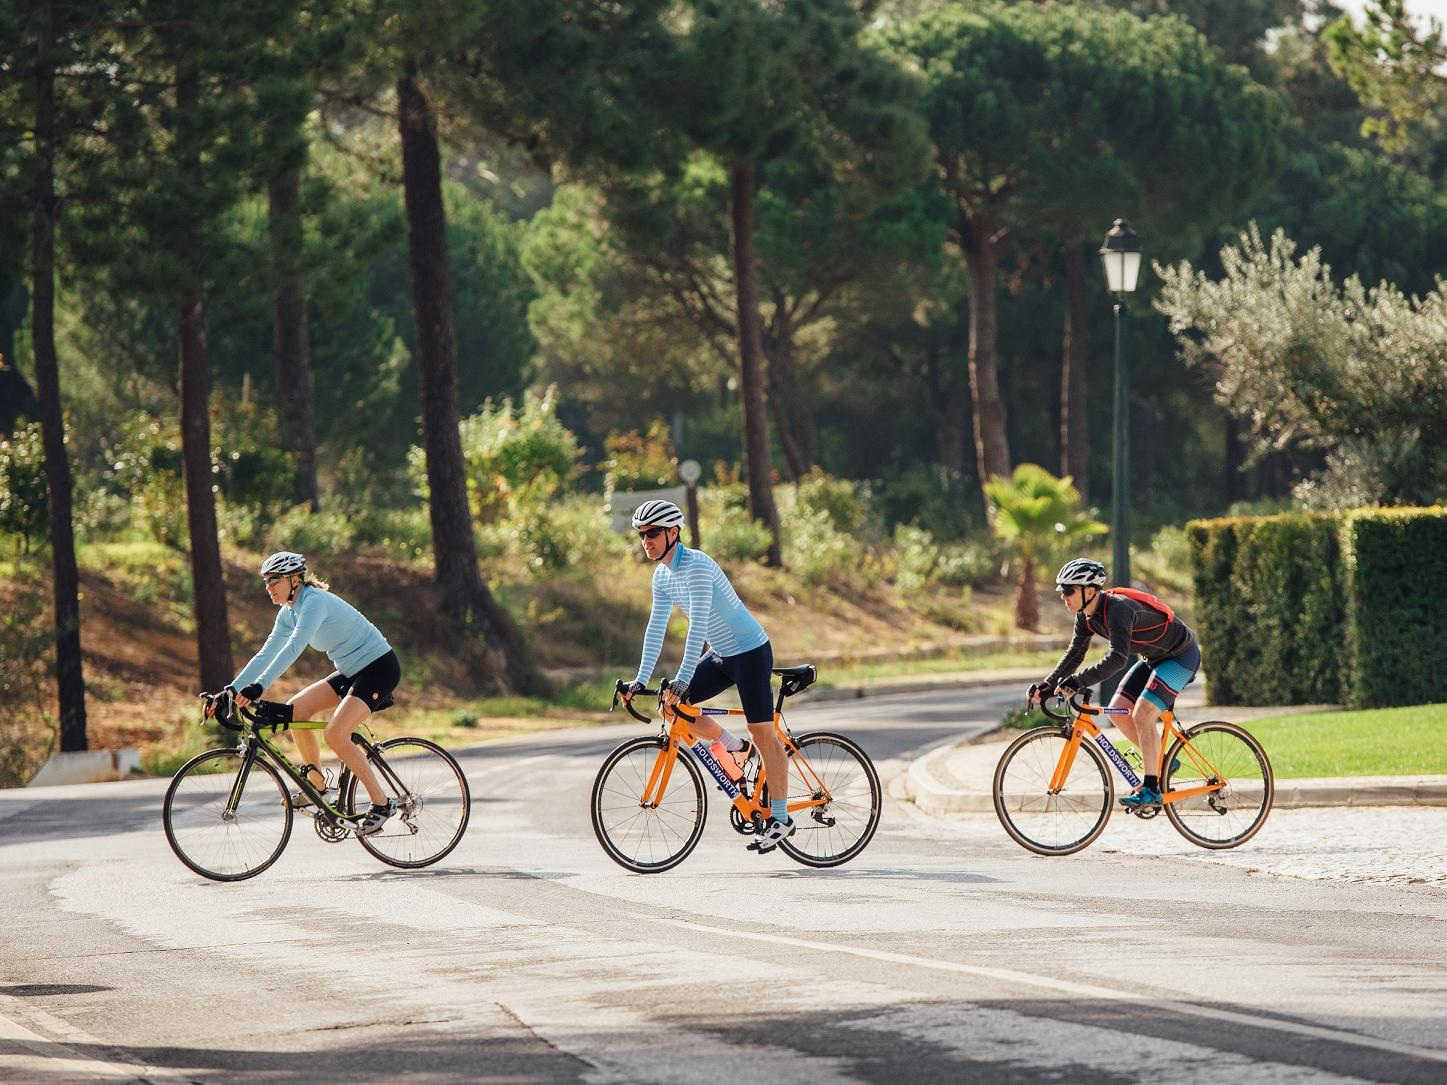 Cycling - -The Magnolia Hotel